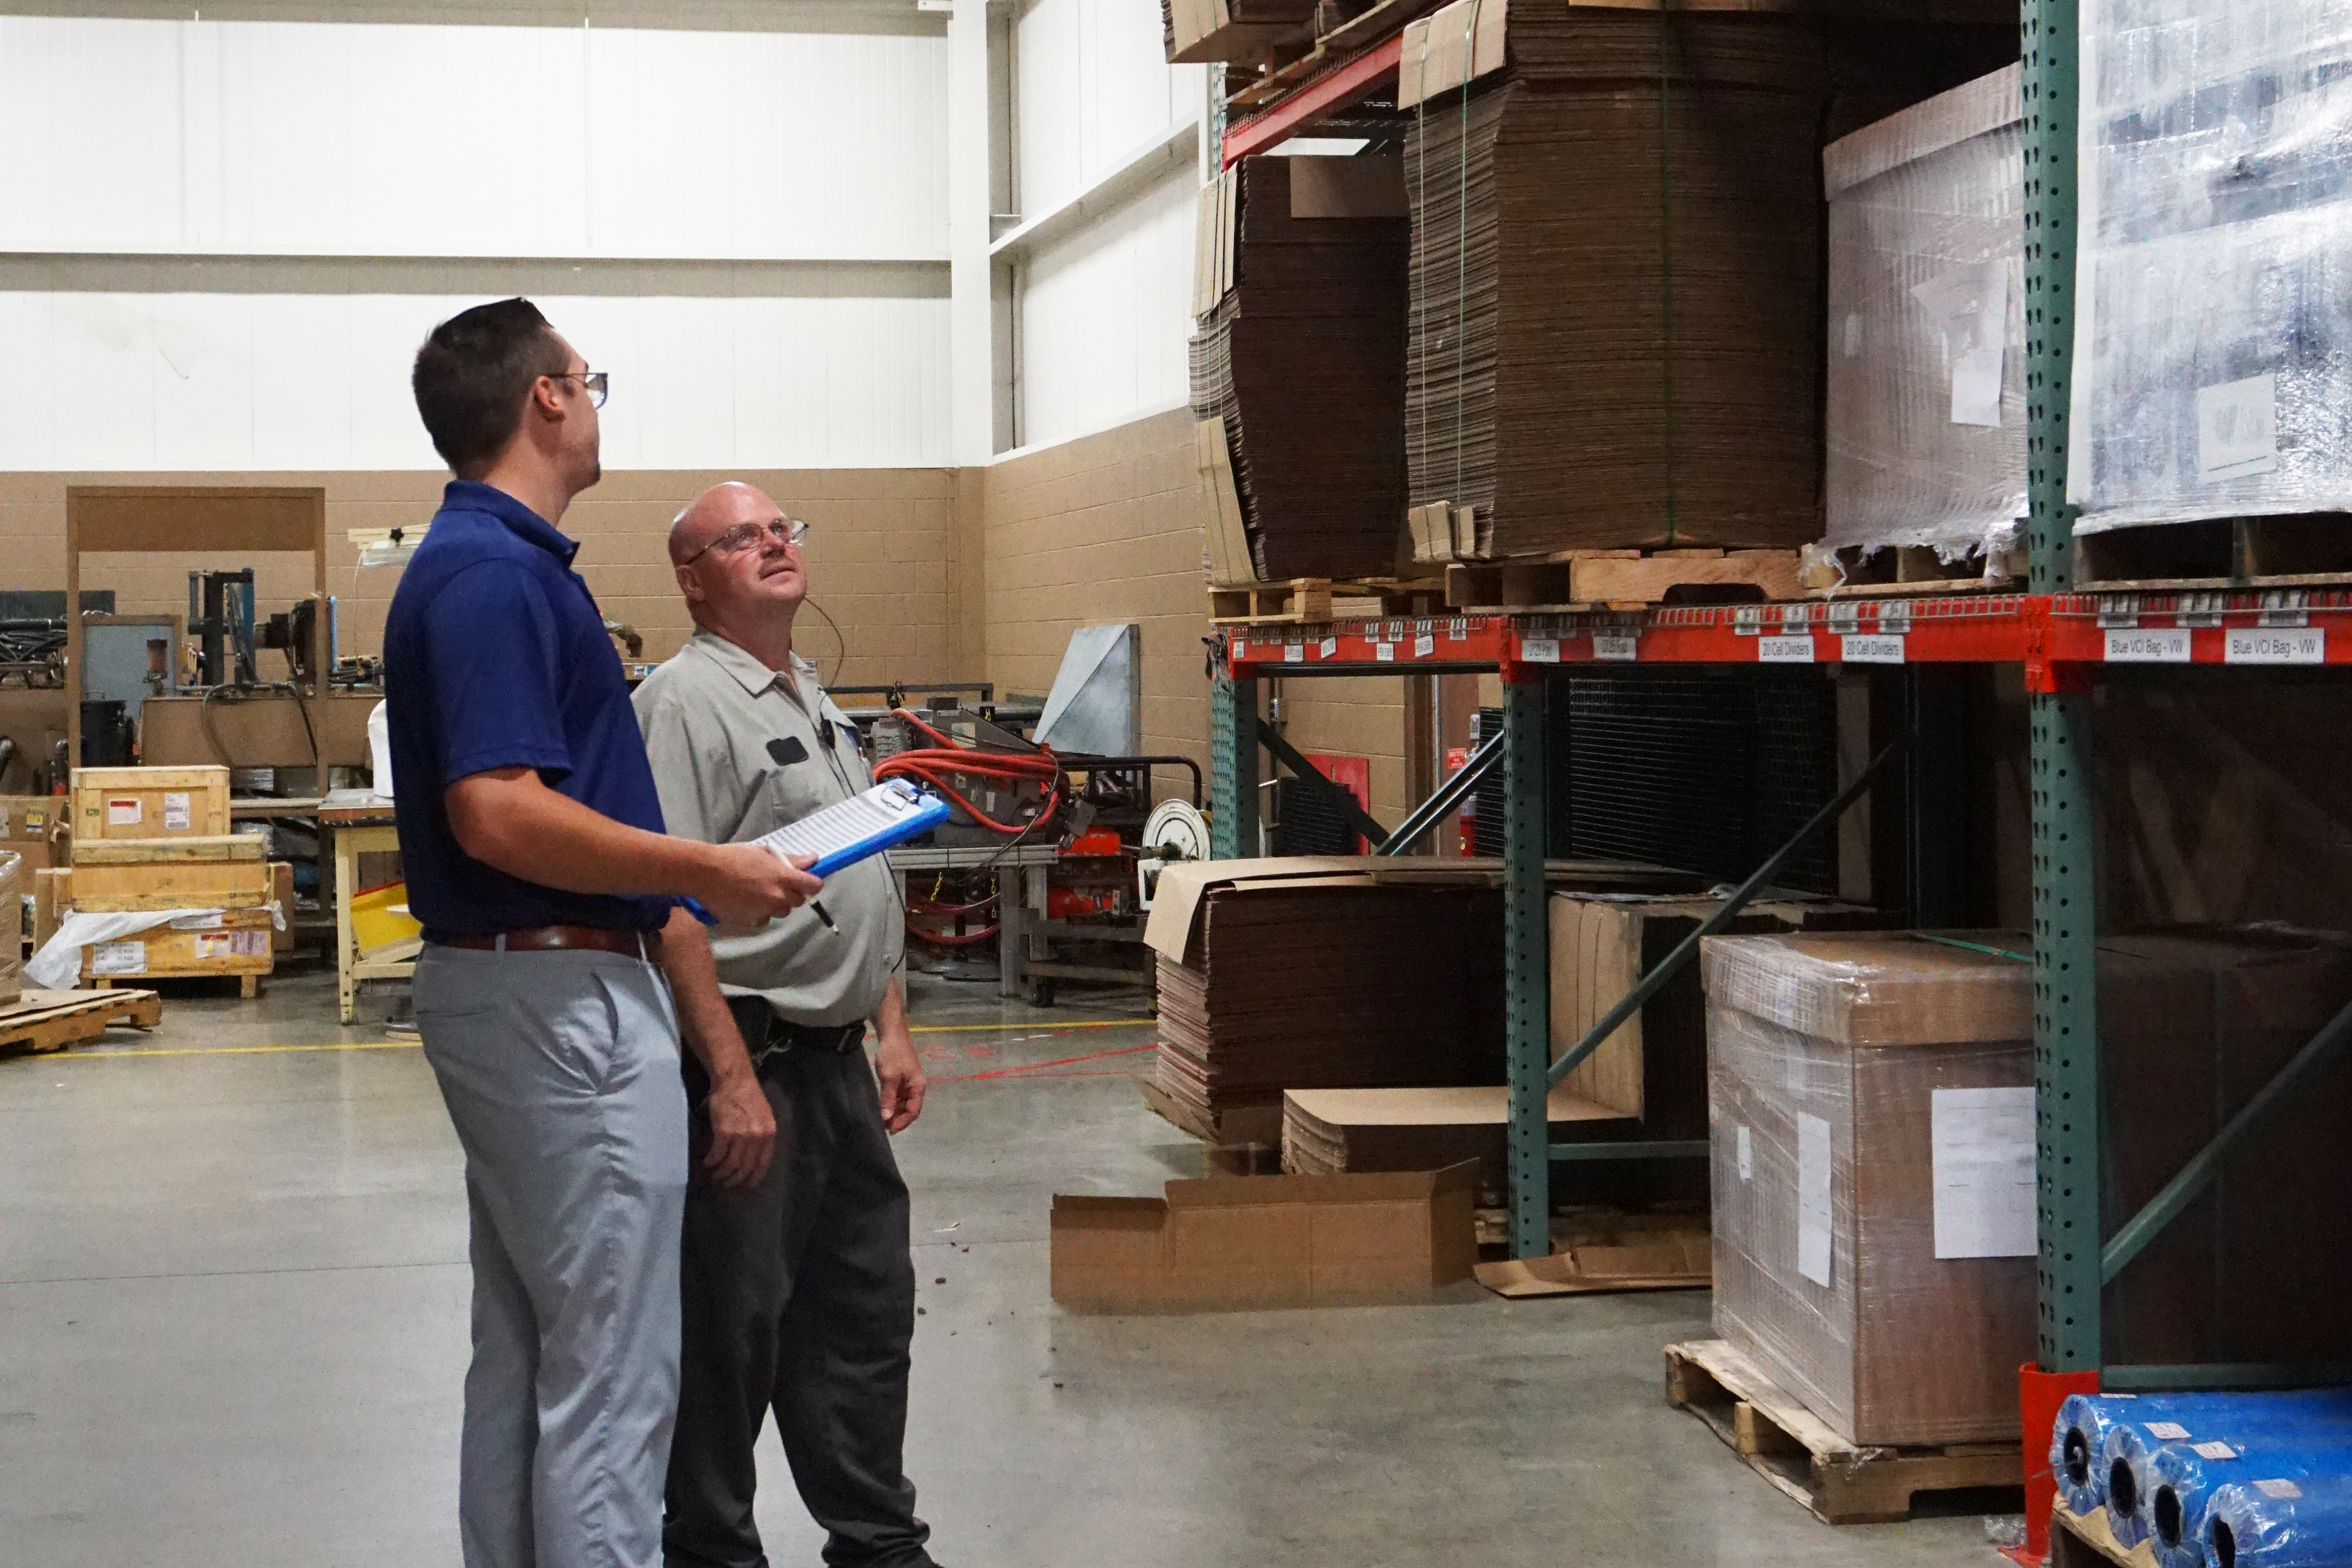 inventory management in the plant